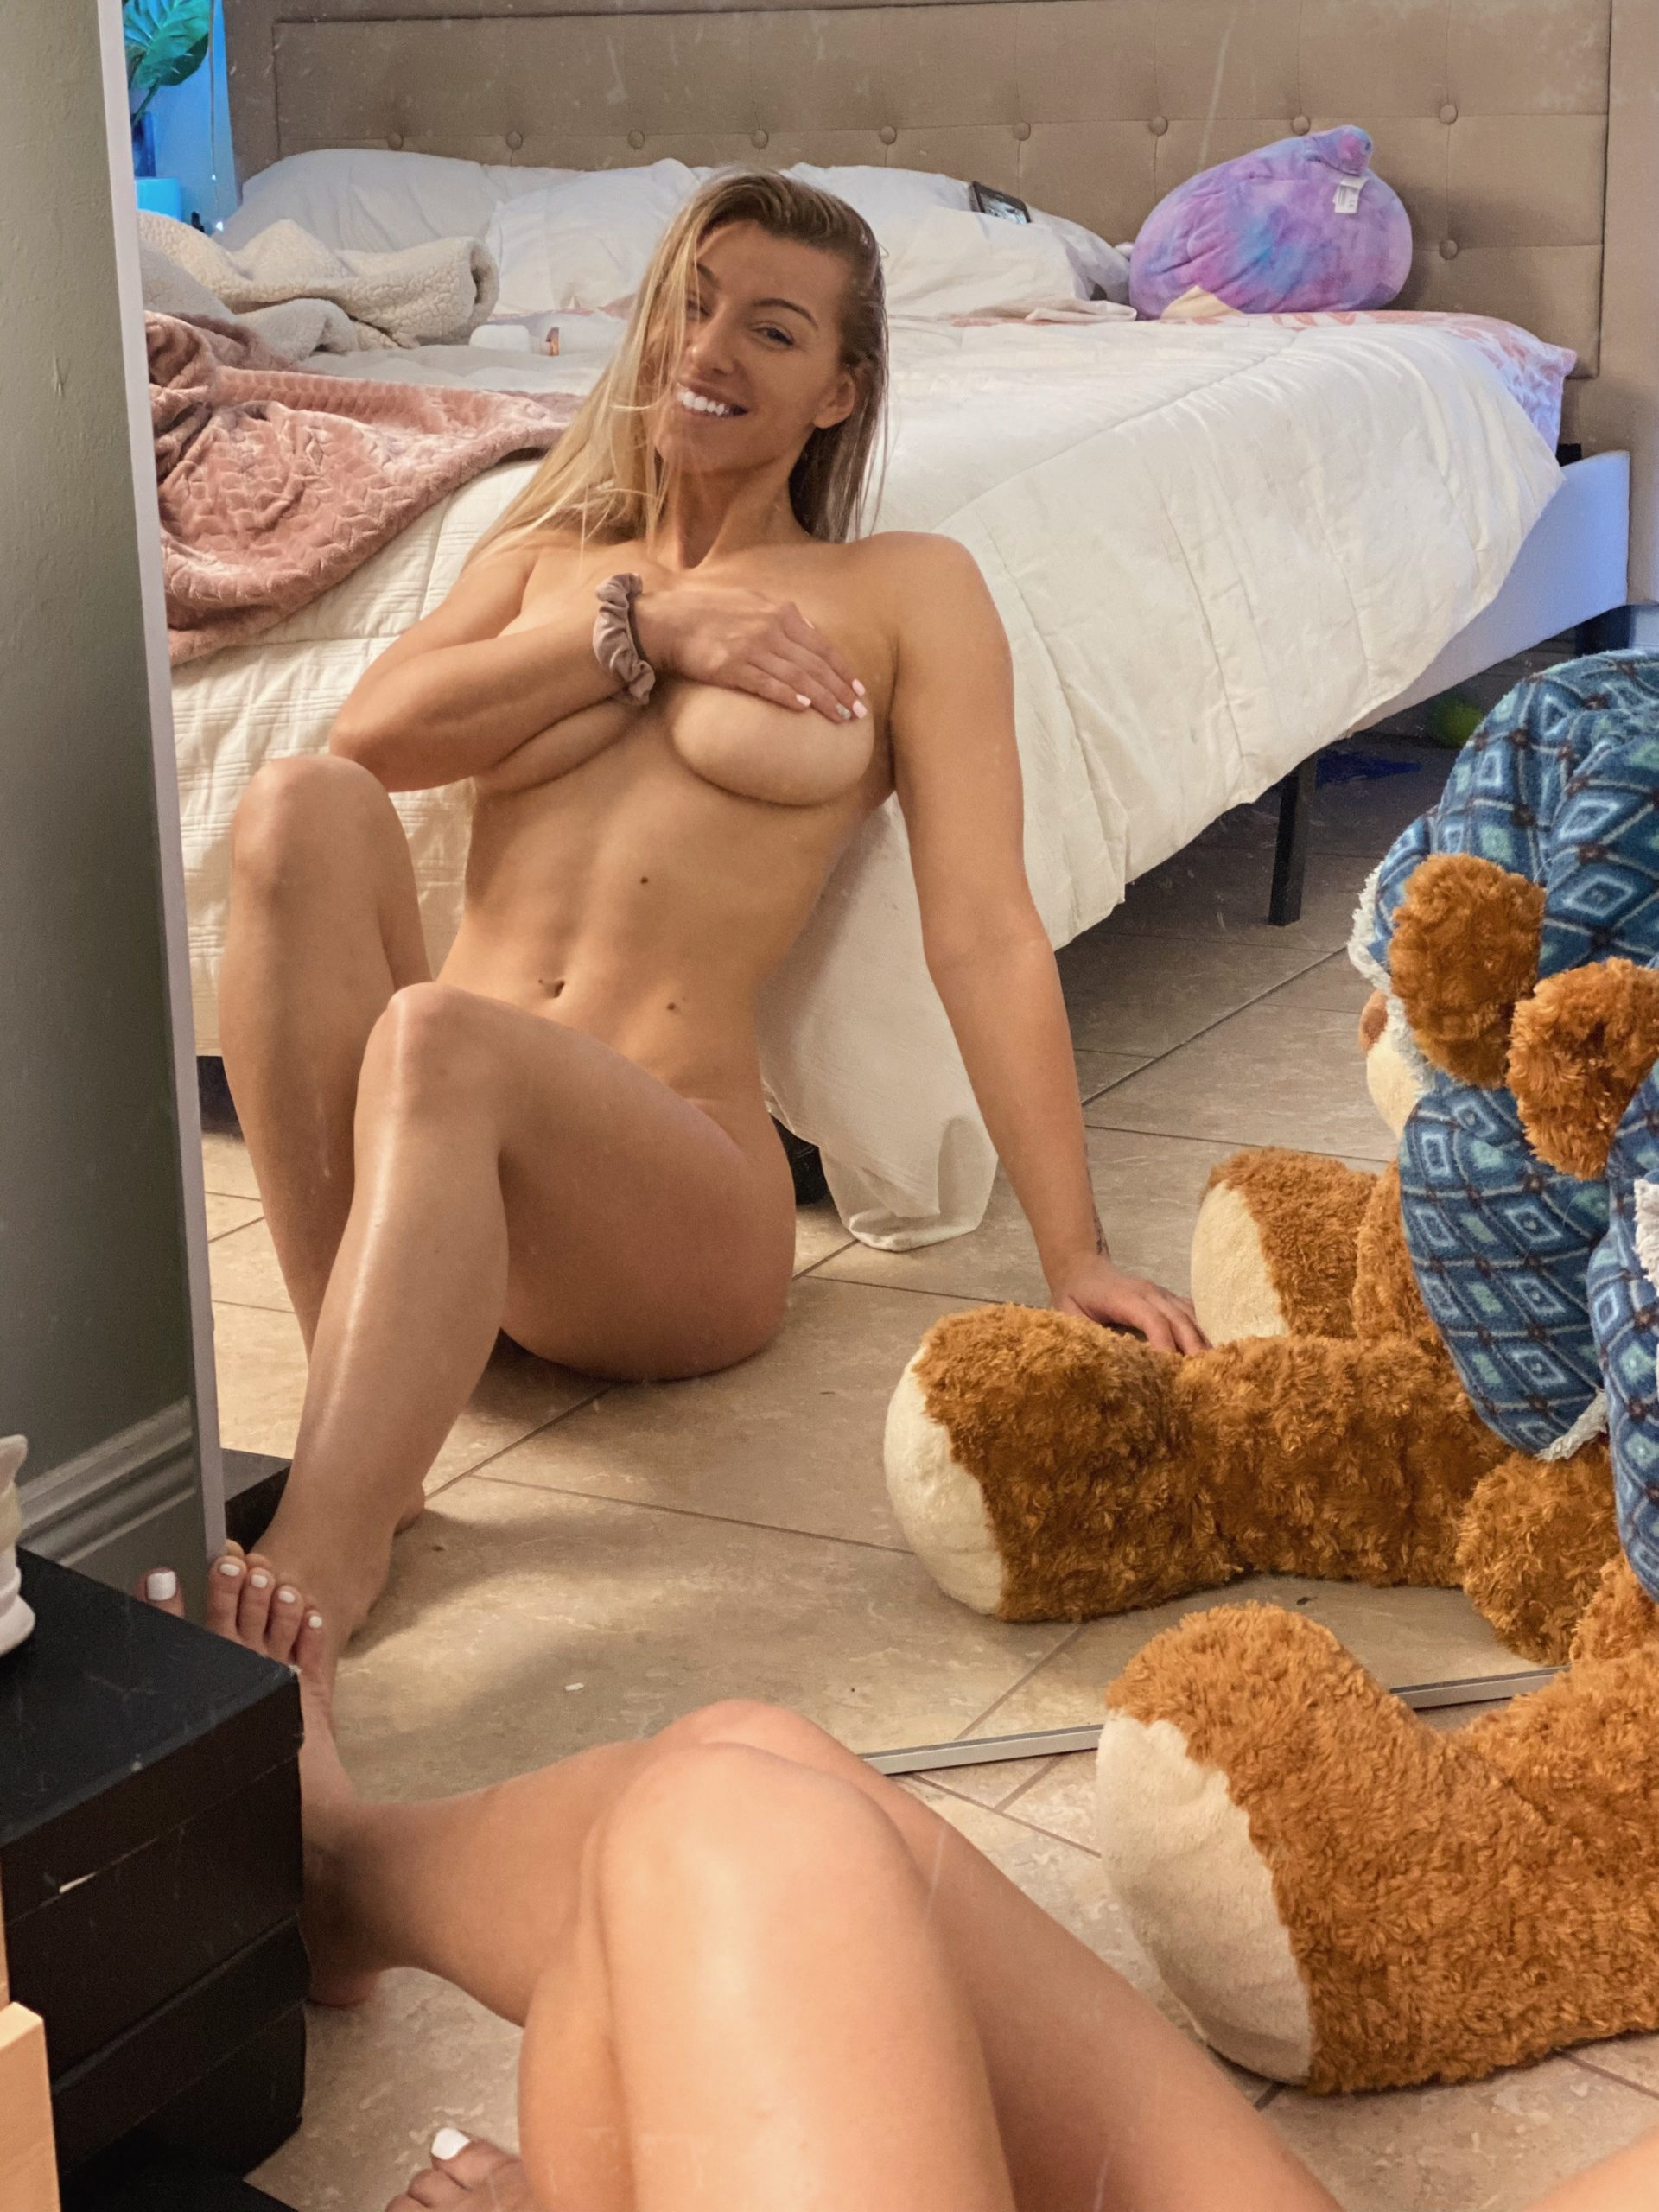 Therealbrittfit Nude Onlyfans Brittney Leaked! 0009